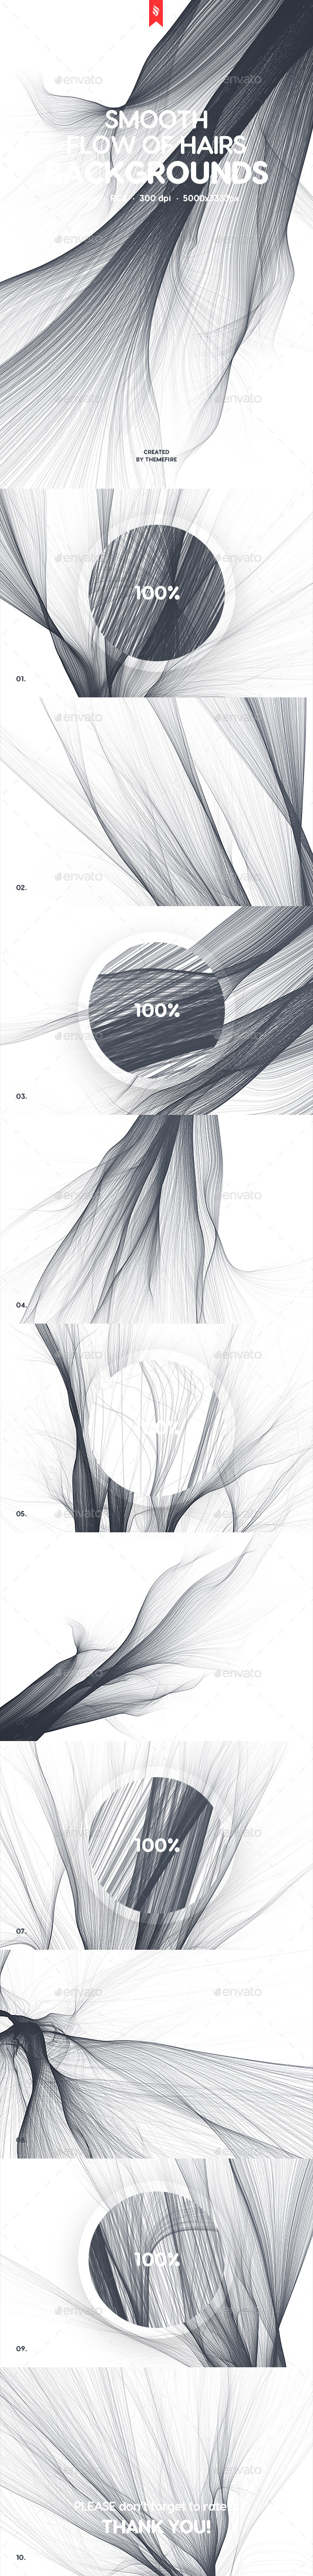 Abstract Smooth Flow of Hairs Backgrounds - Backgrounds Graphics